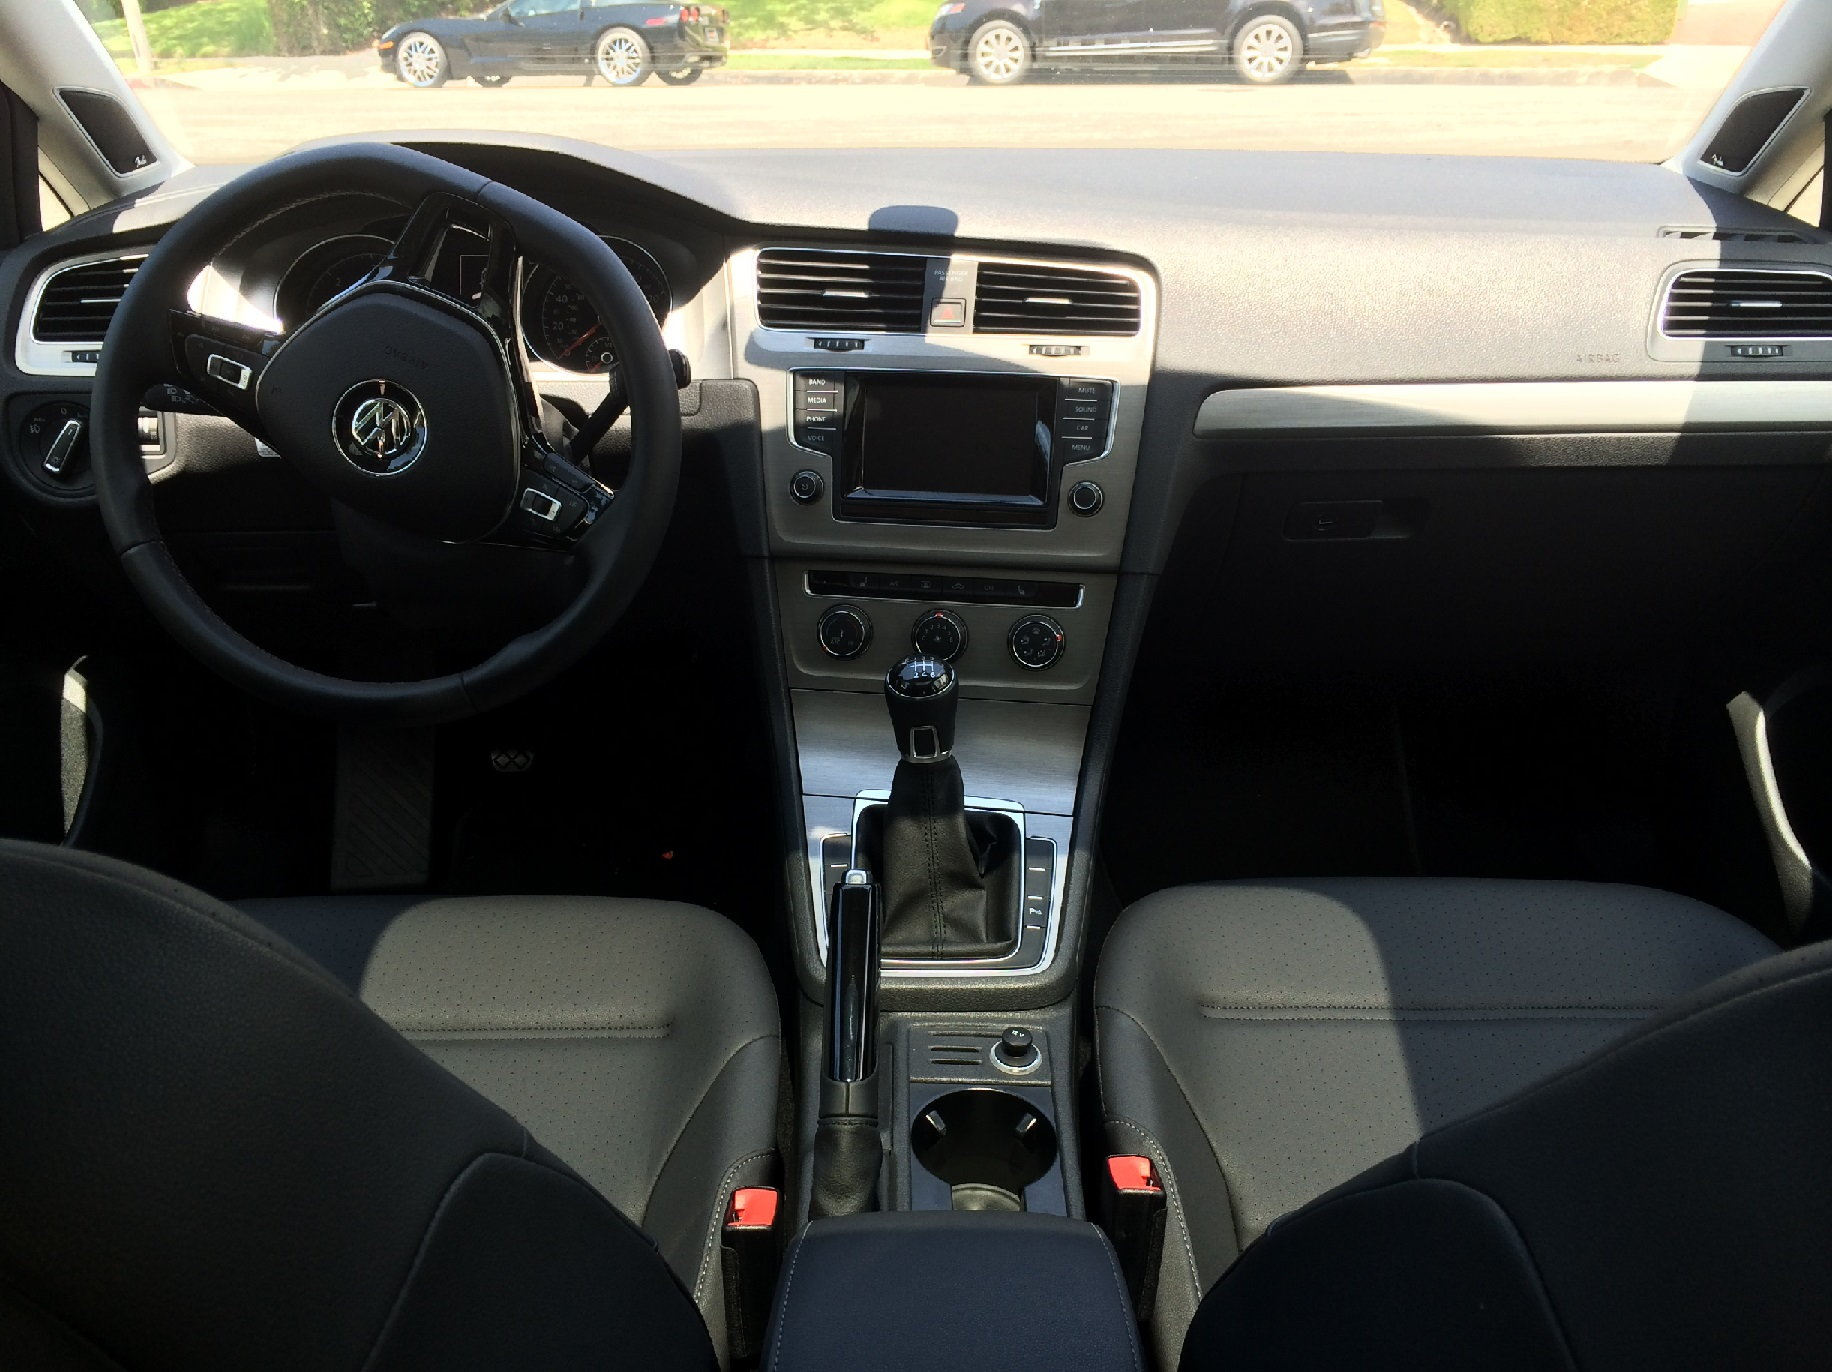 Volkswagen Golf TDI Interior